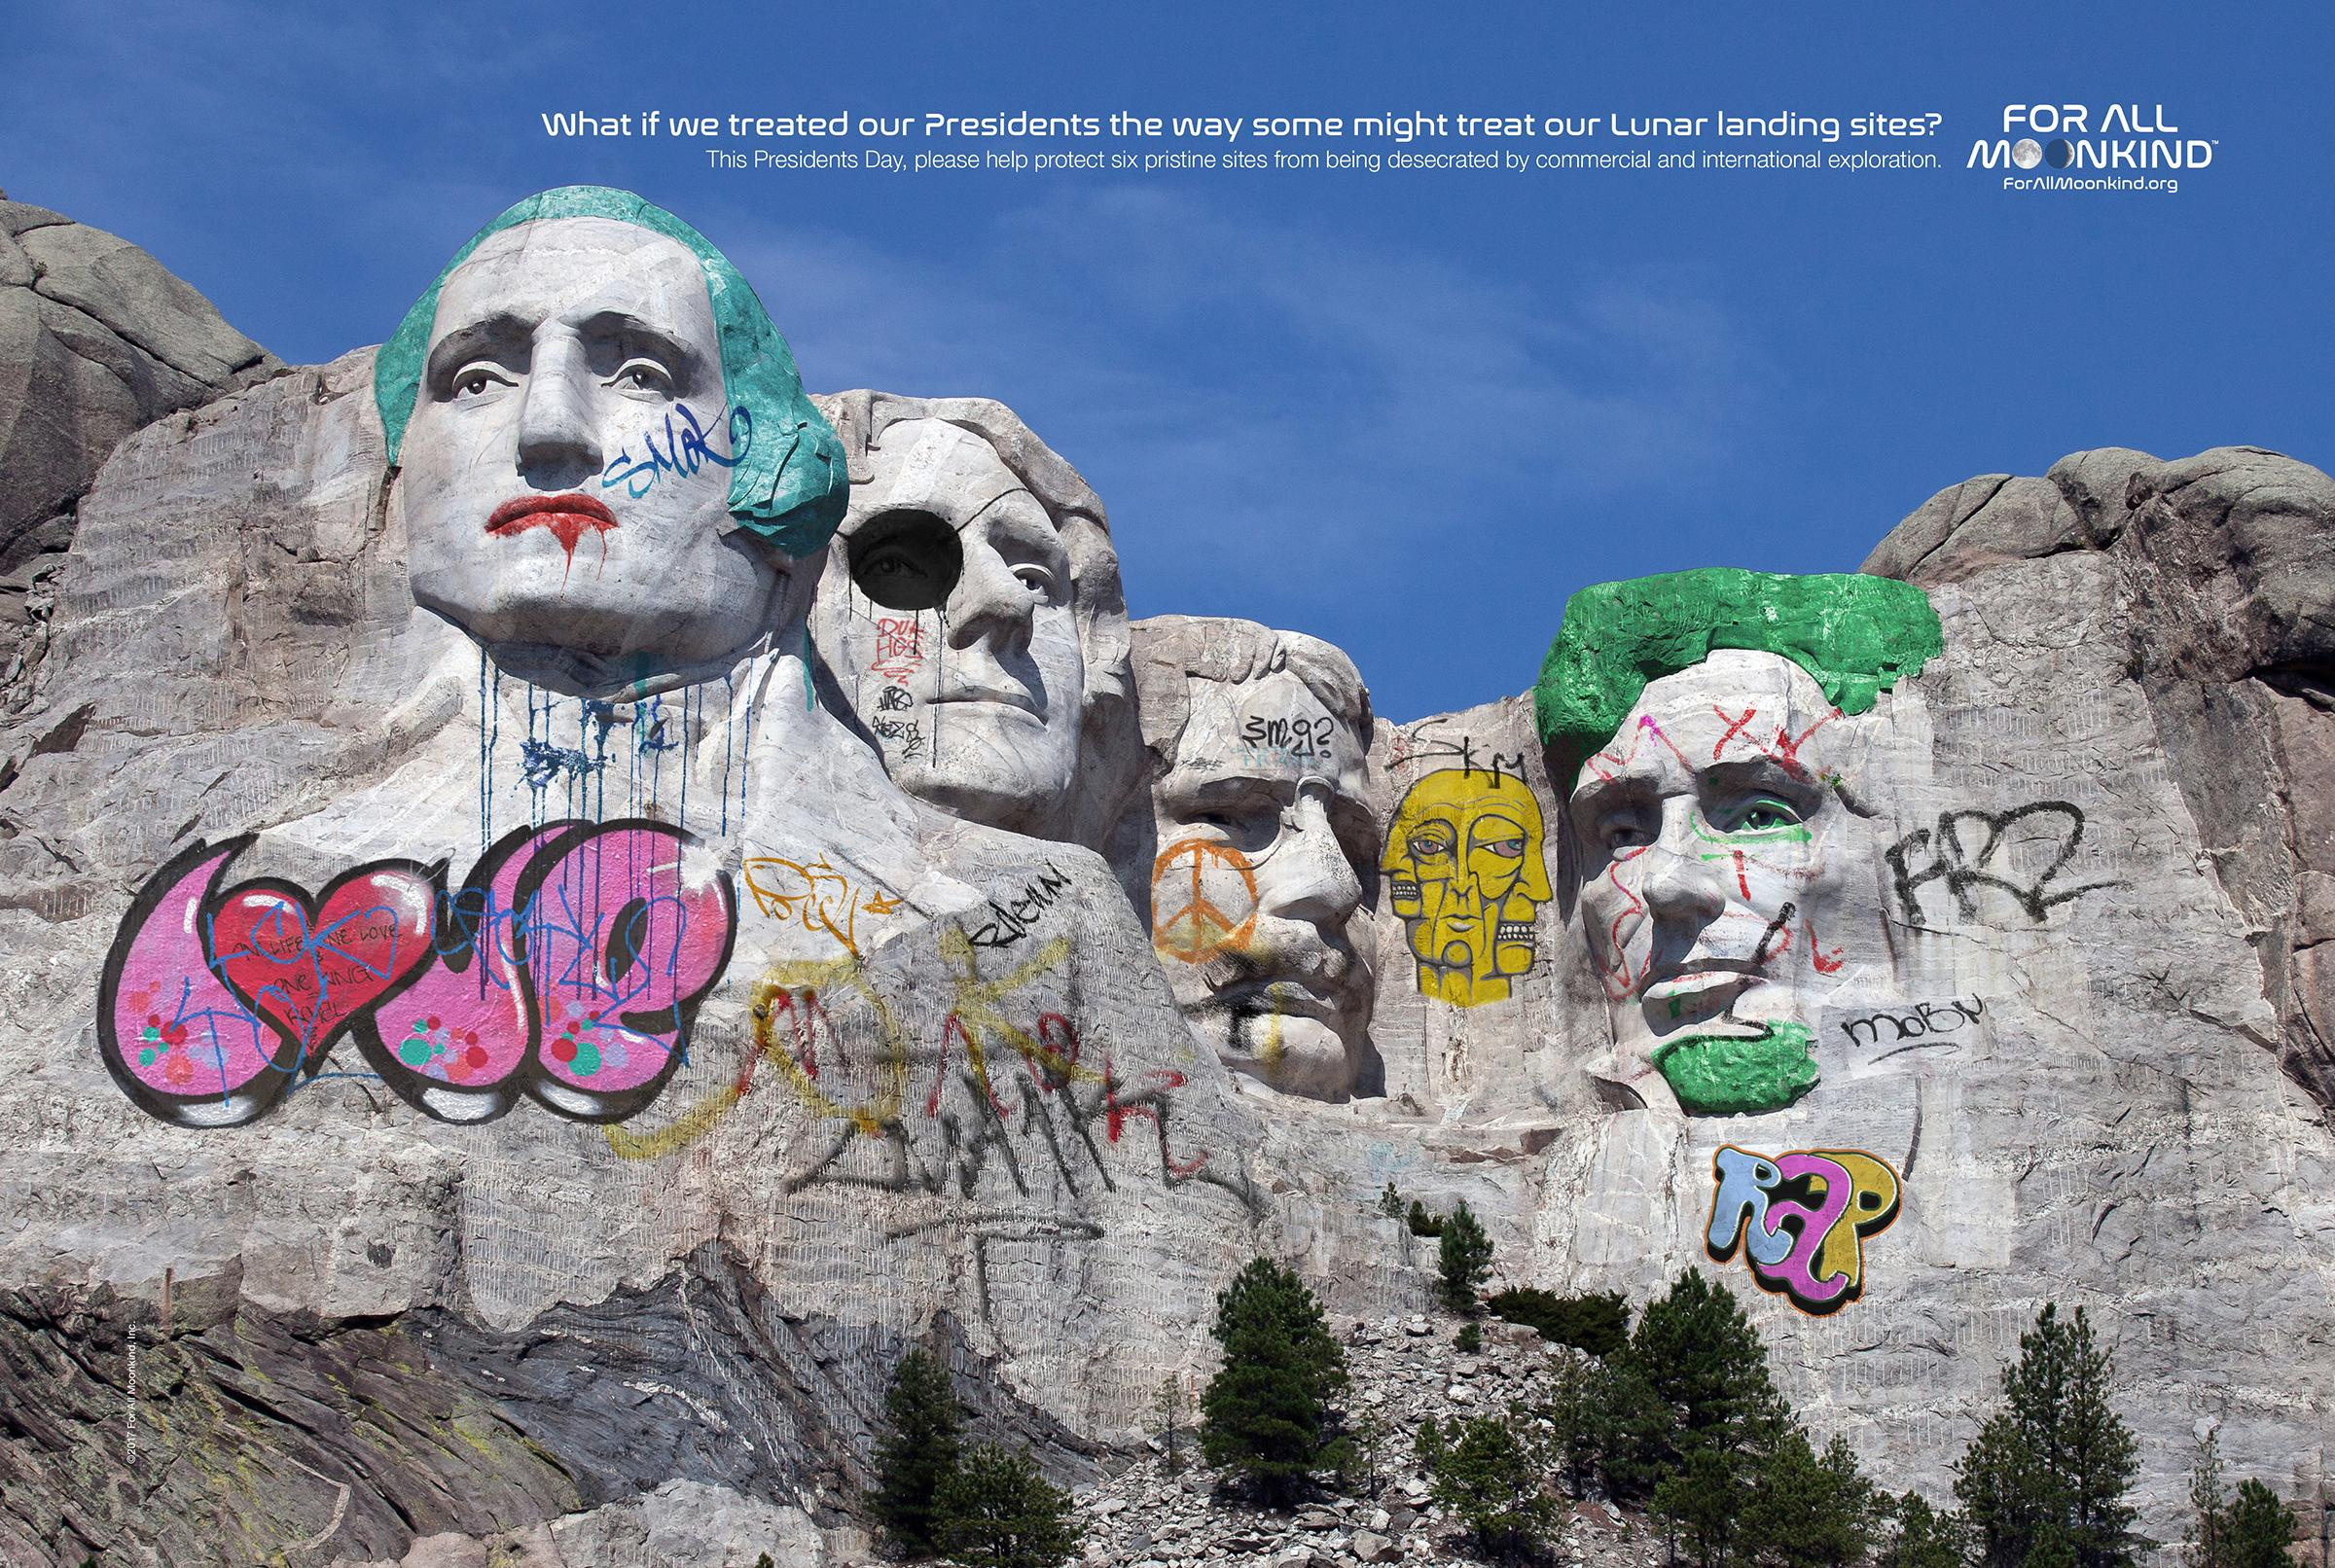 For All Moonkind Print Ad - President's Day